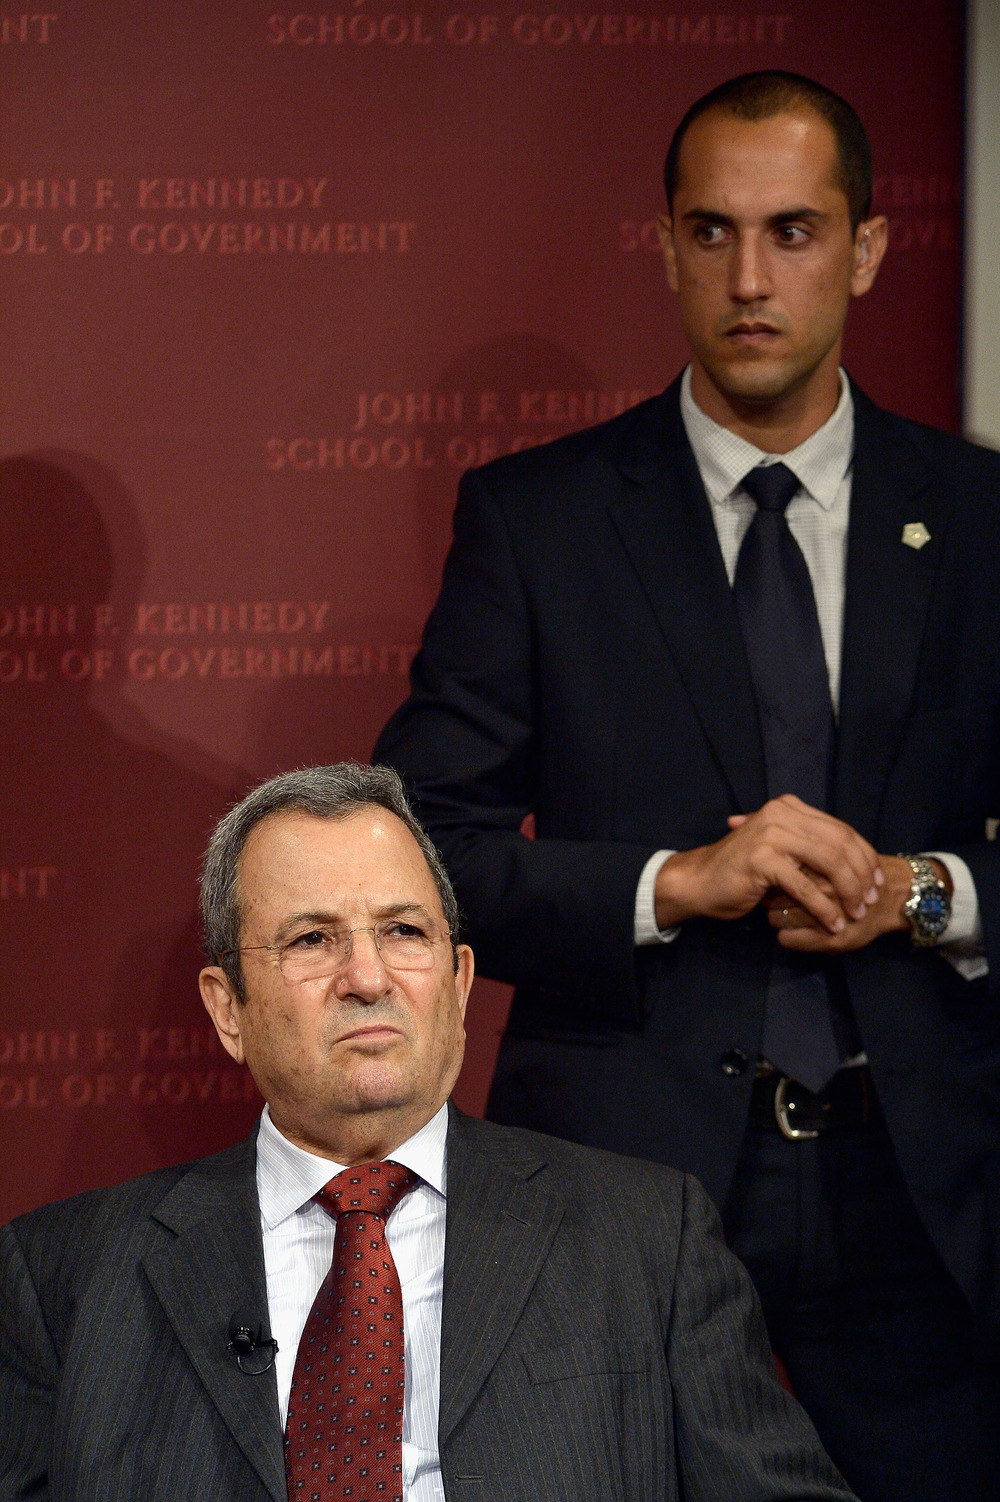 Ehud Barak at Harvard